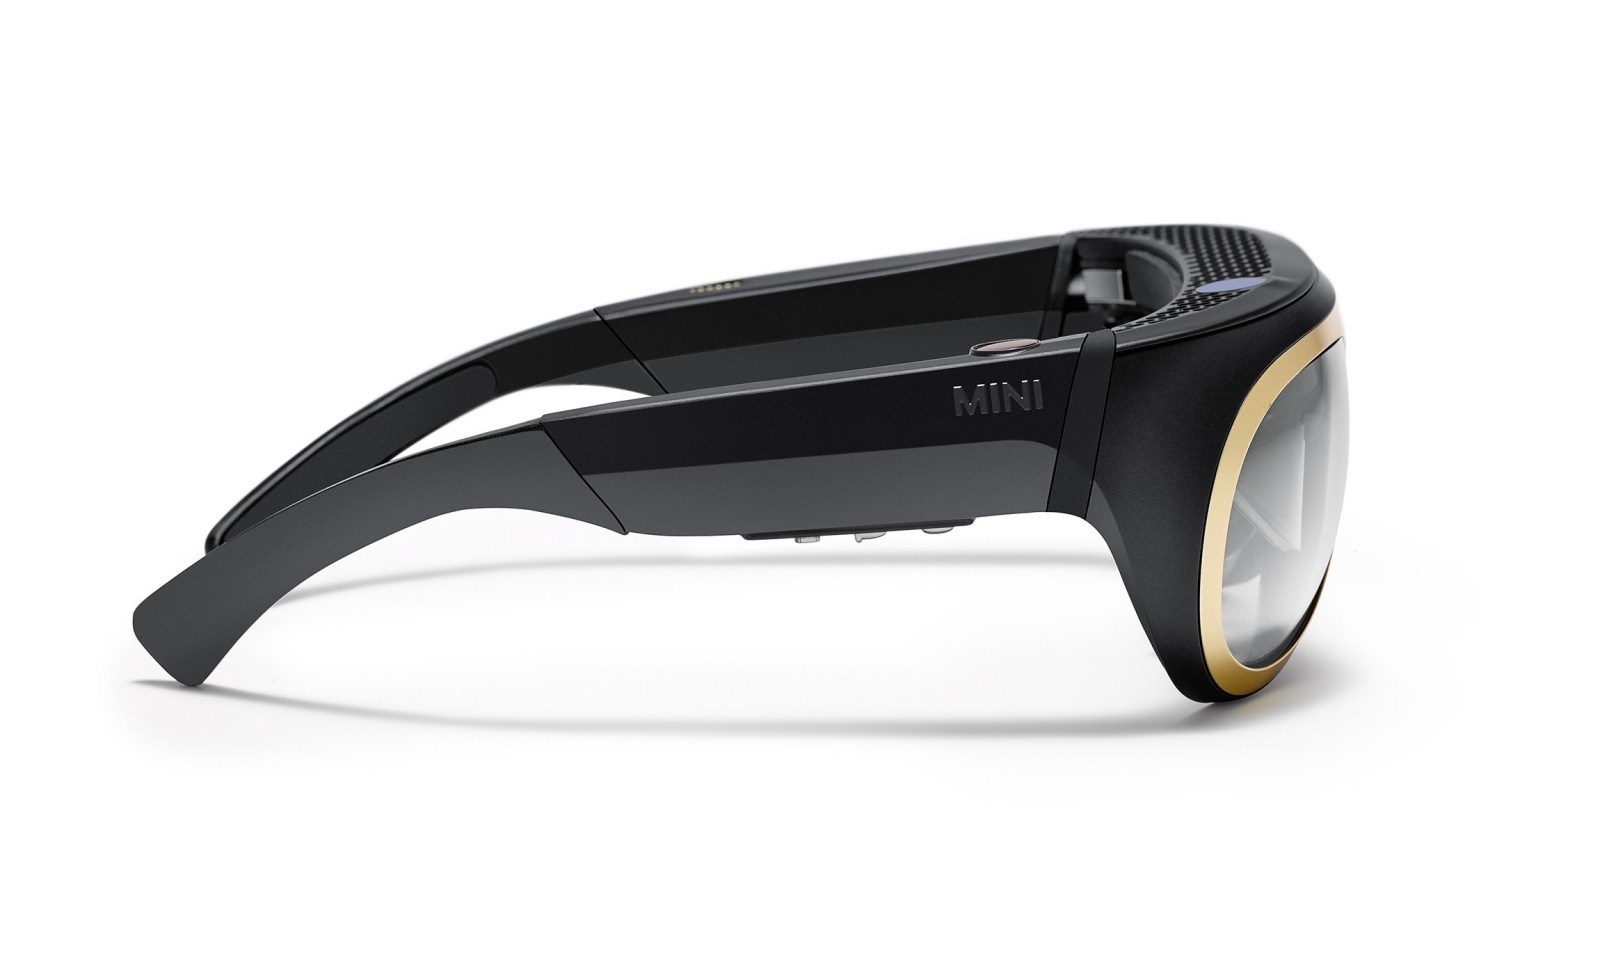 MINI Reveals New Augmented Vision Goggle Concept 11